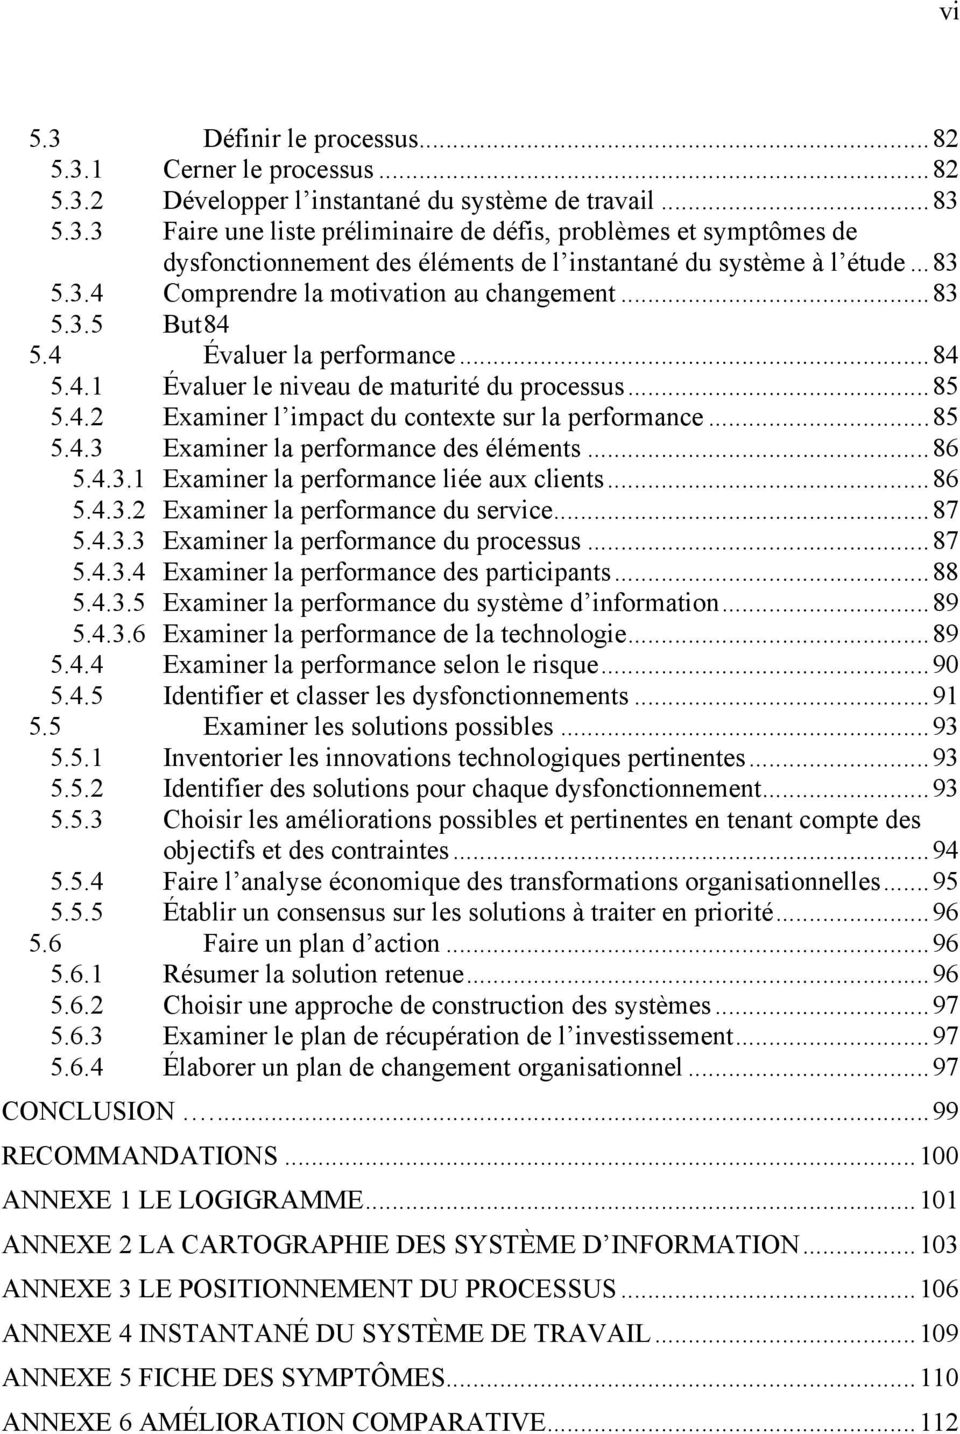 ..85 5.4.3 Examiner la performance des éléments...86 5.4.3.1 Examiner la performance liée aux clients...86 5.4.3.2 Examiner la performance du service...87 5.4.3.3 Examiner la performance du processus.